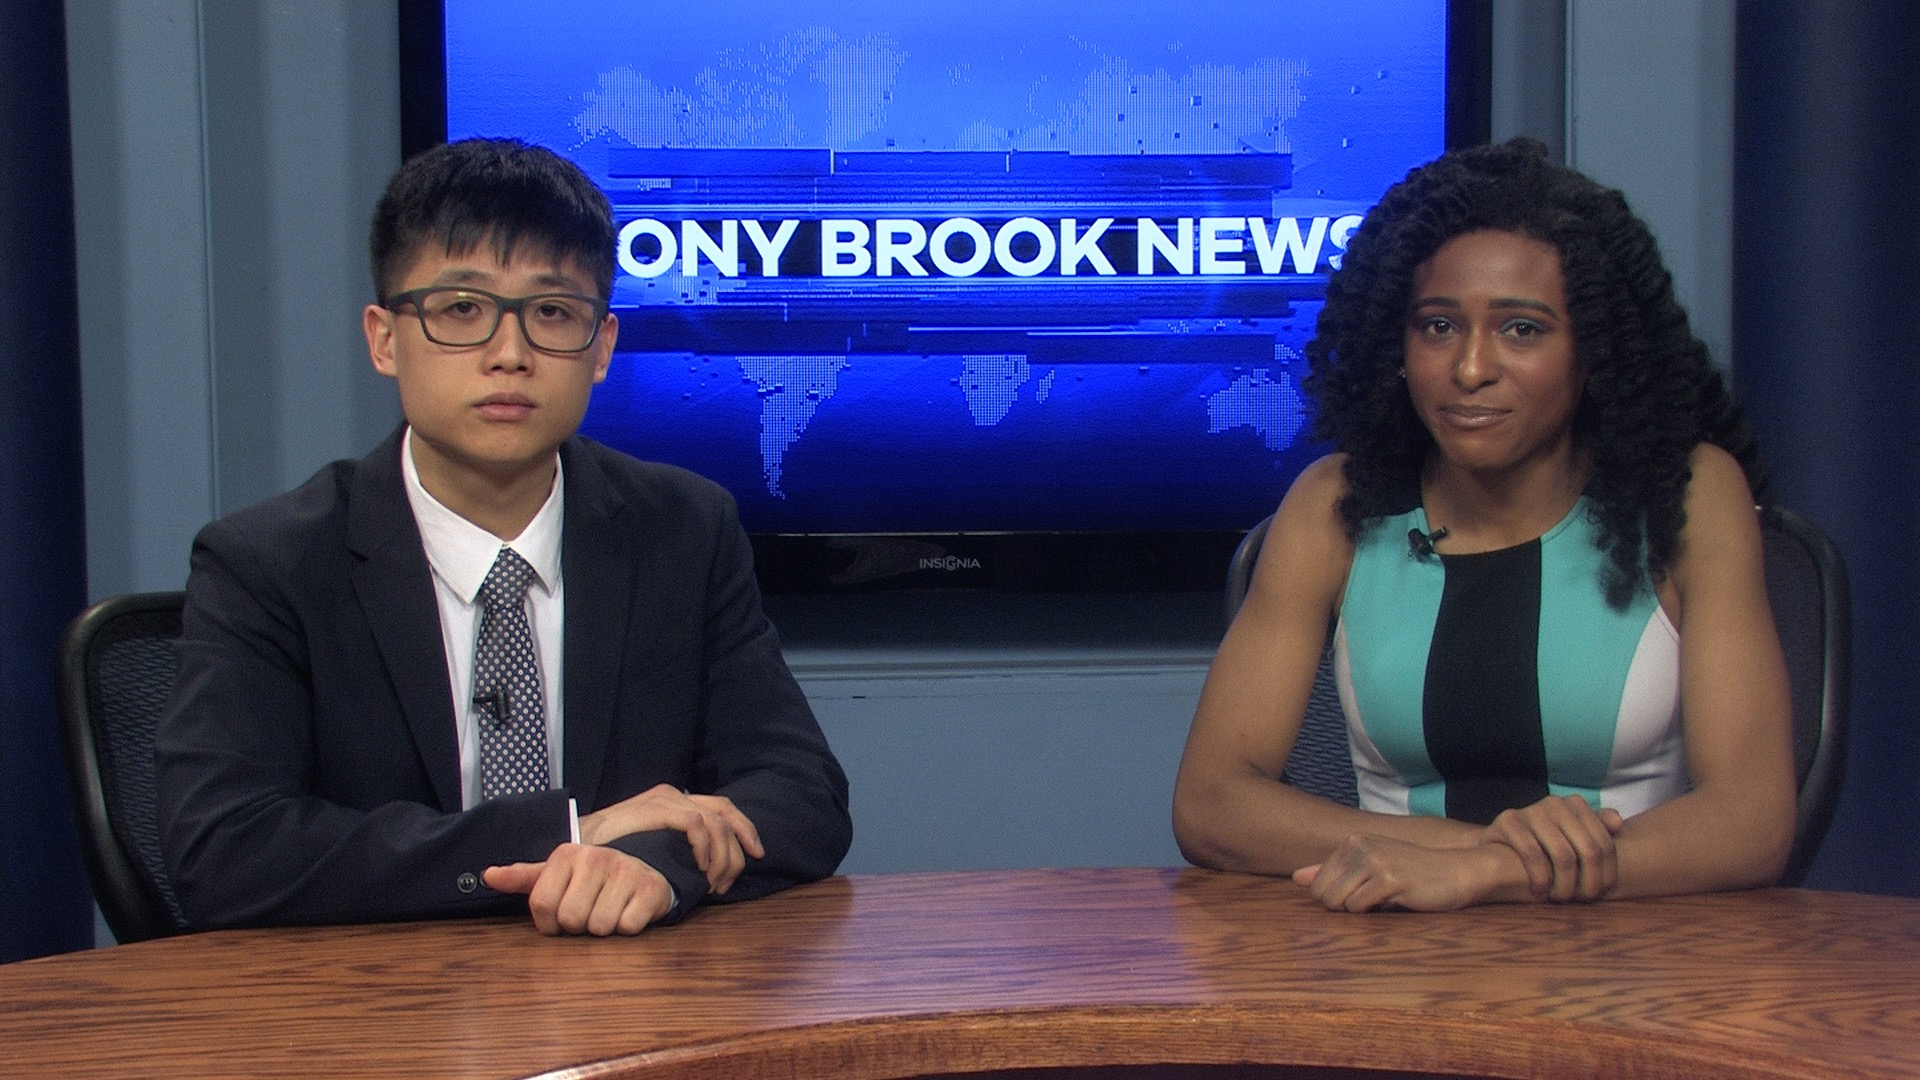 Stony Brook News – March 6, 2019